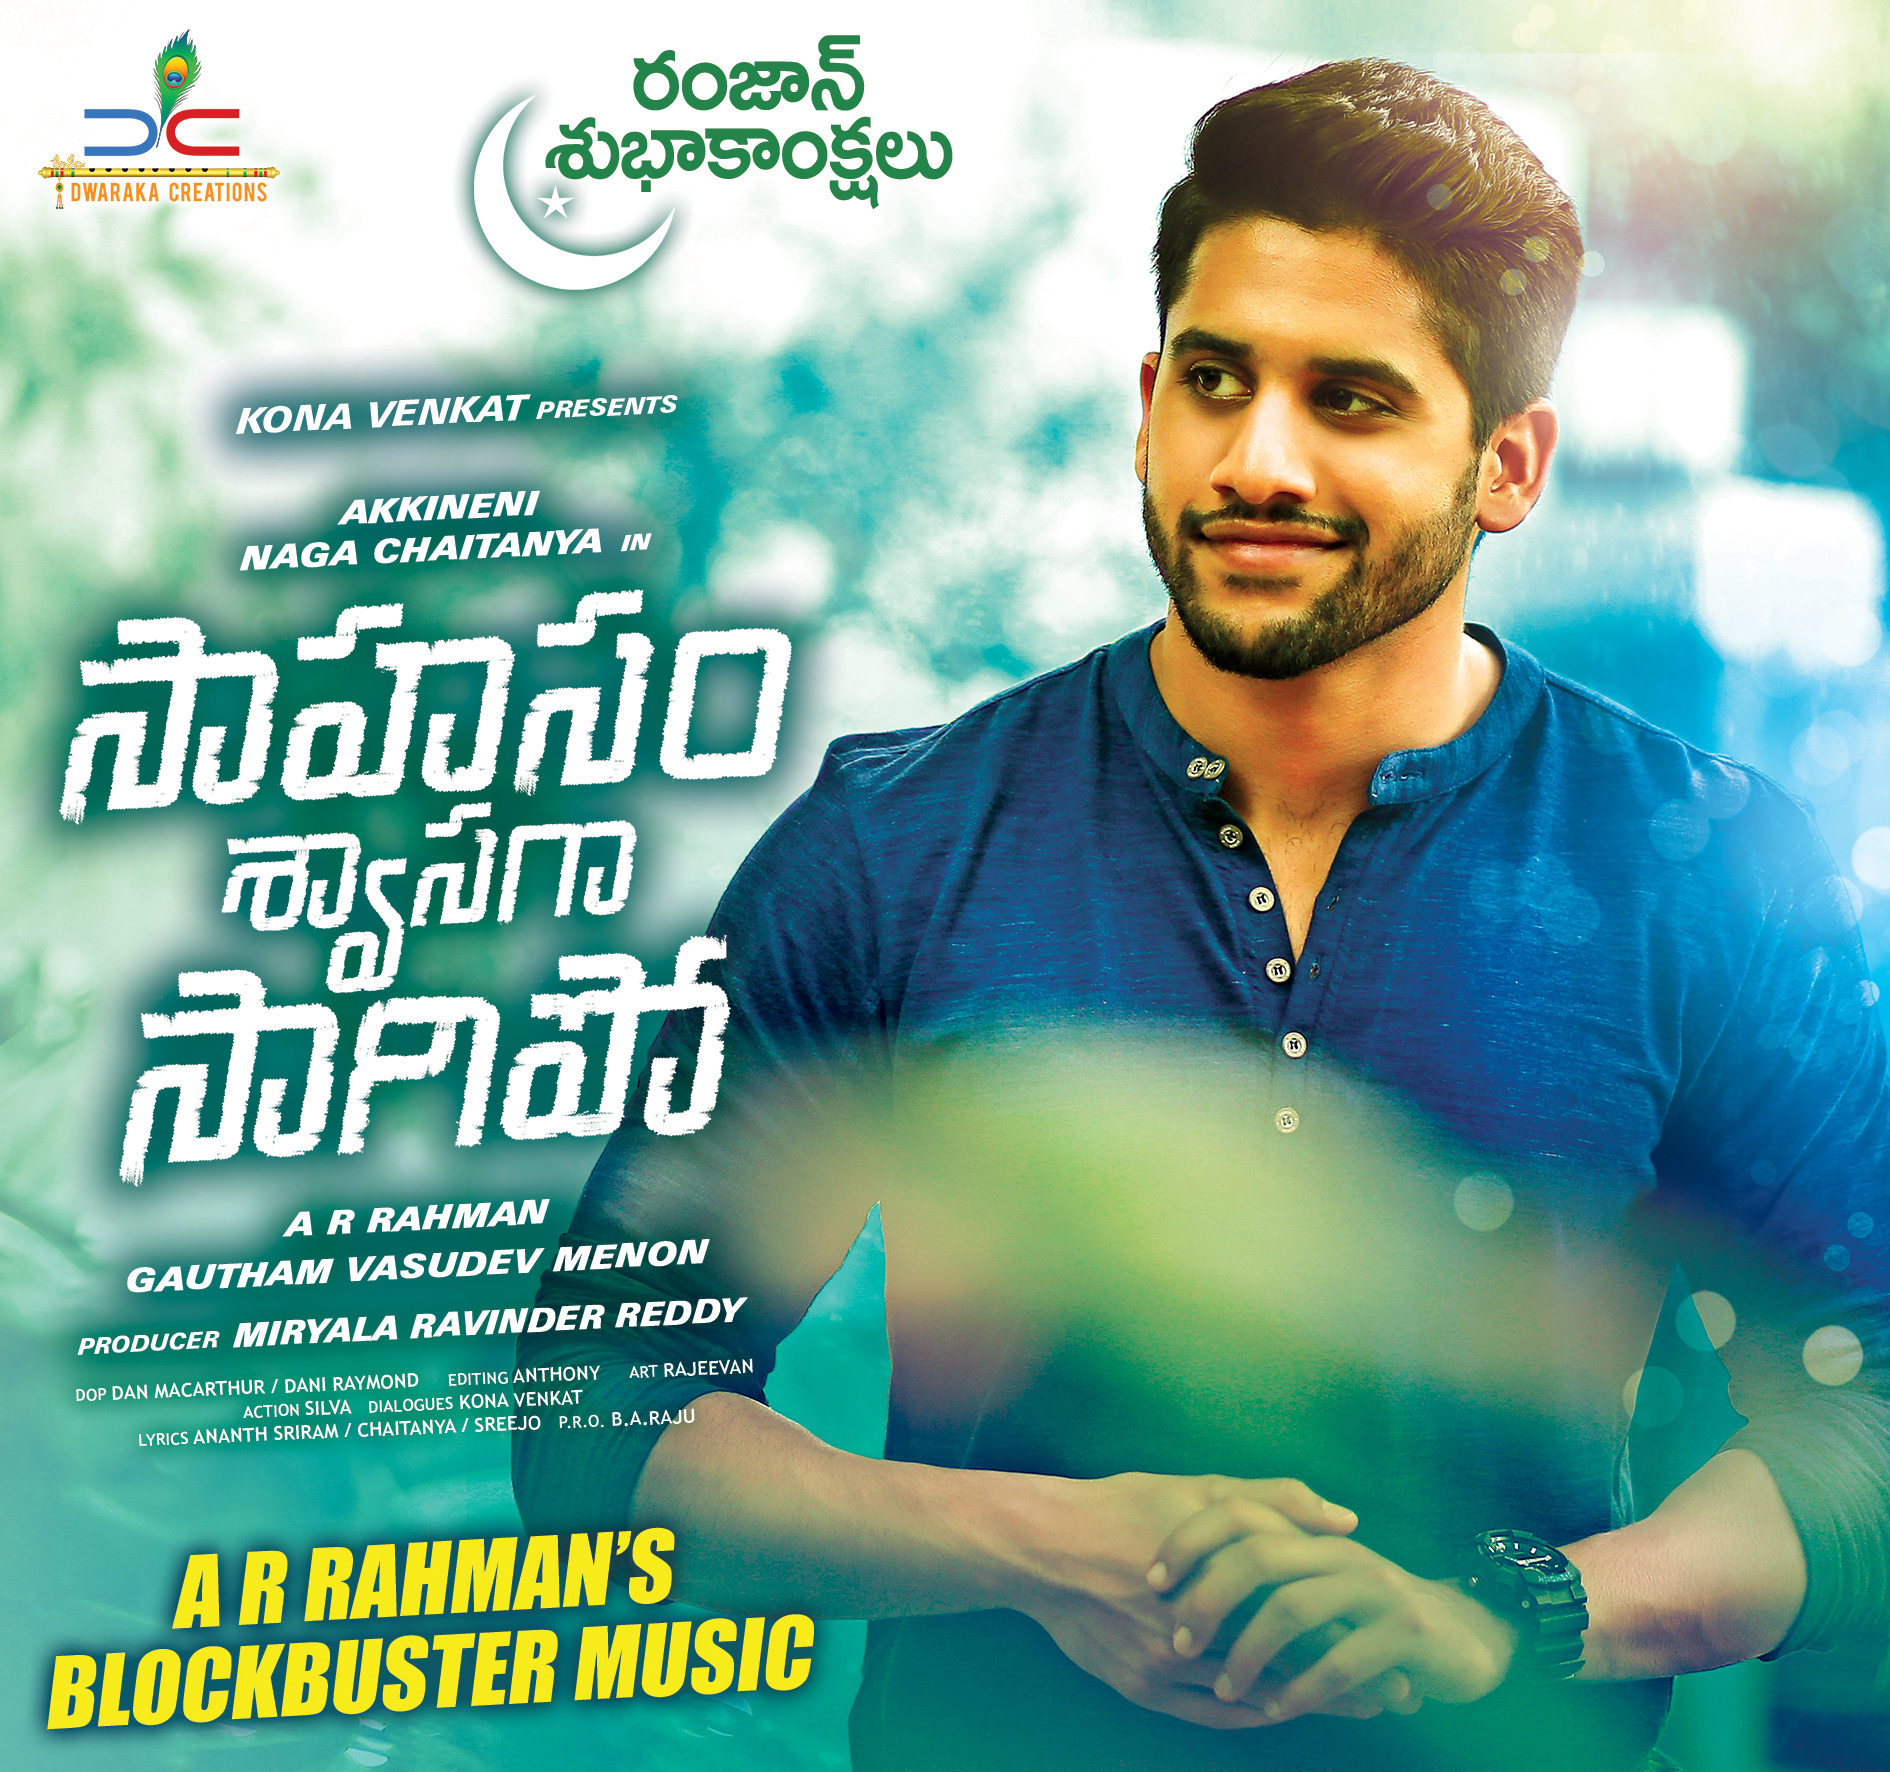 Sahasam Swasaga Sagipo Latest first look Poster/Trailer full Details